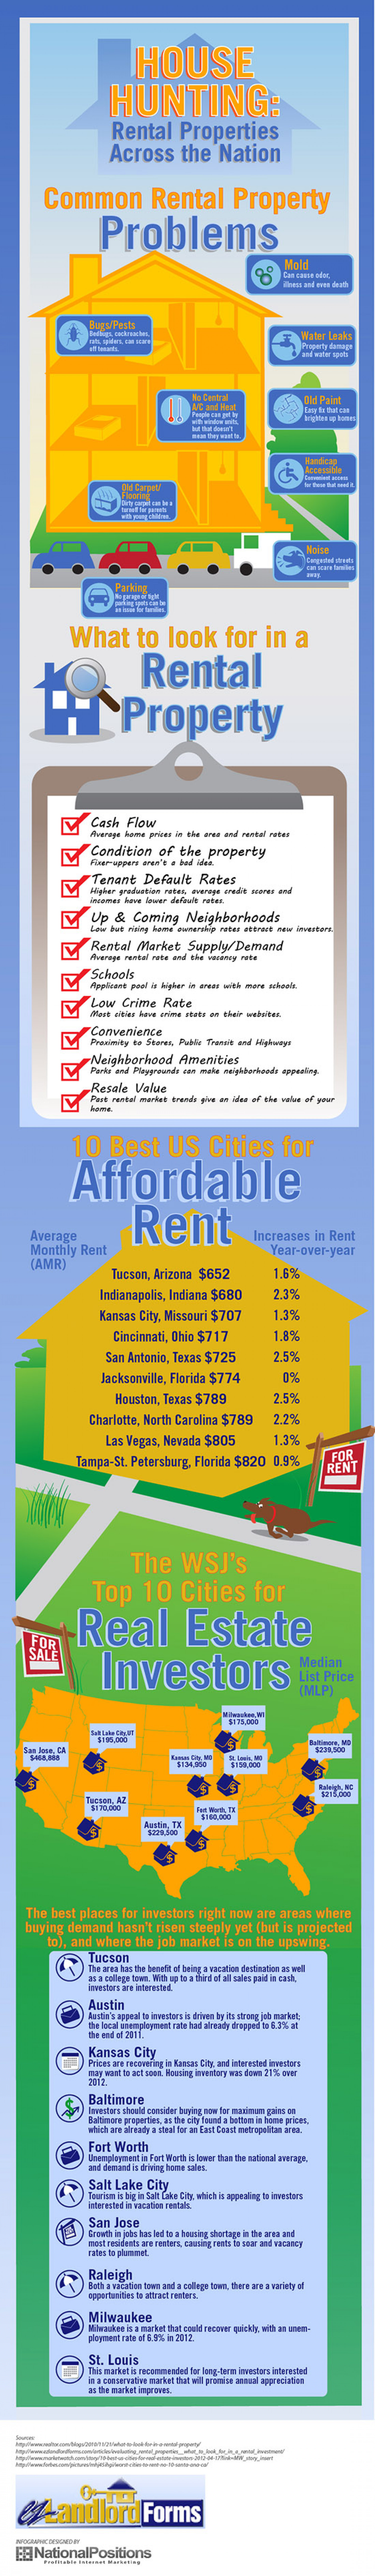 House Hunting: Rental Properties Across The Nation Infographic